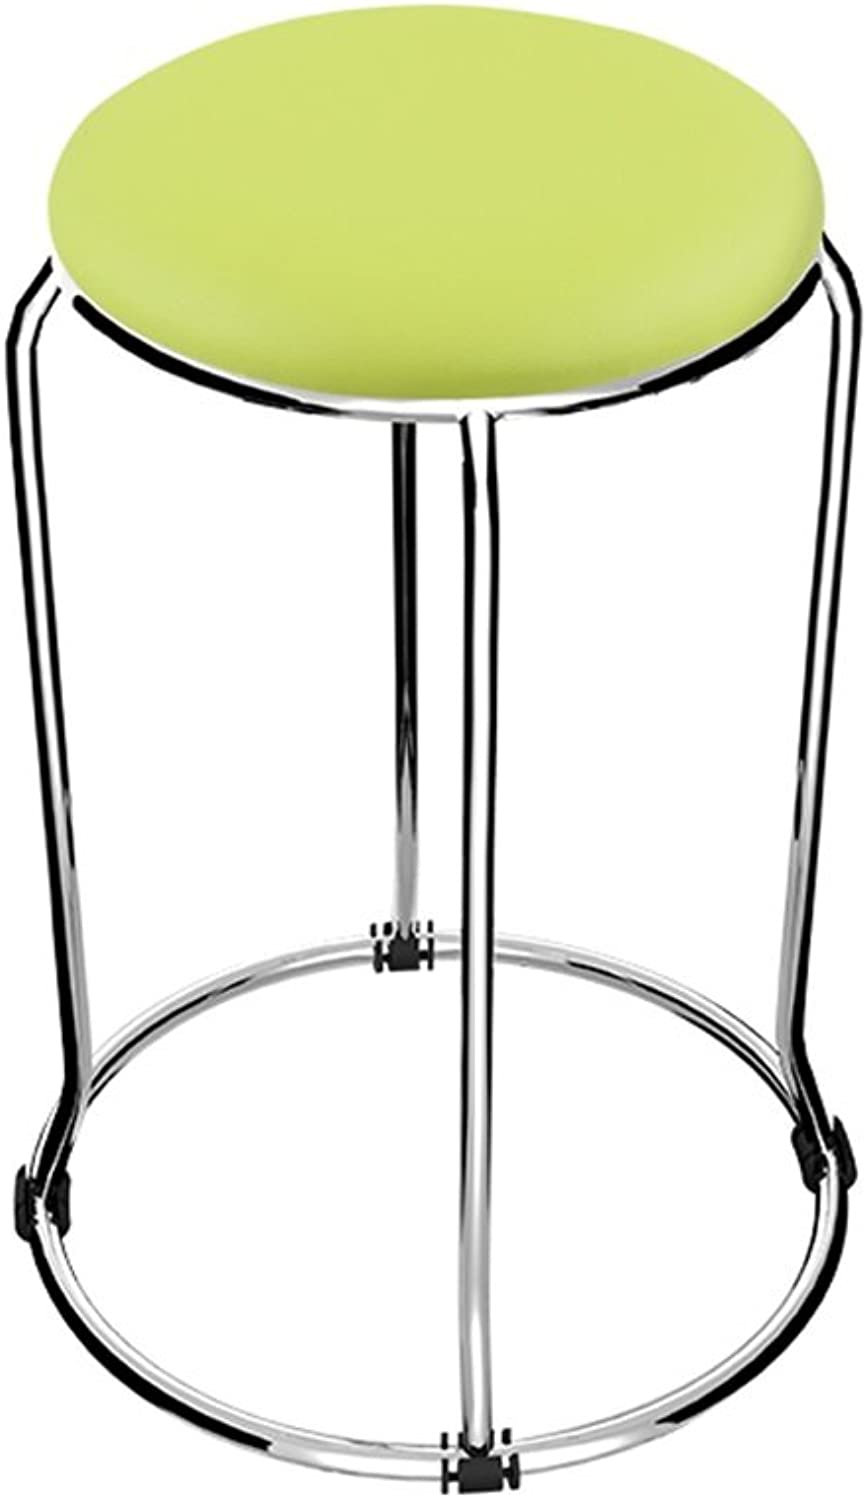 Fashion Stainless Steel Small Round Stool Soft Leather Chair Table High Stool (Green D37cmH47cm)